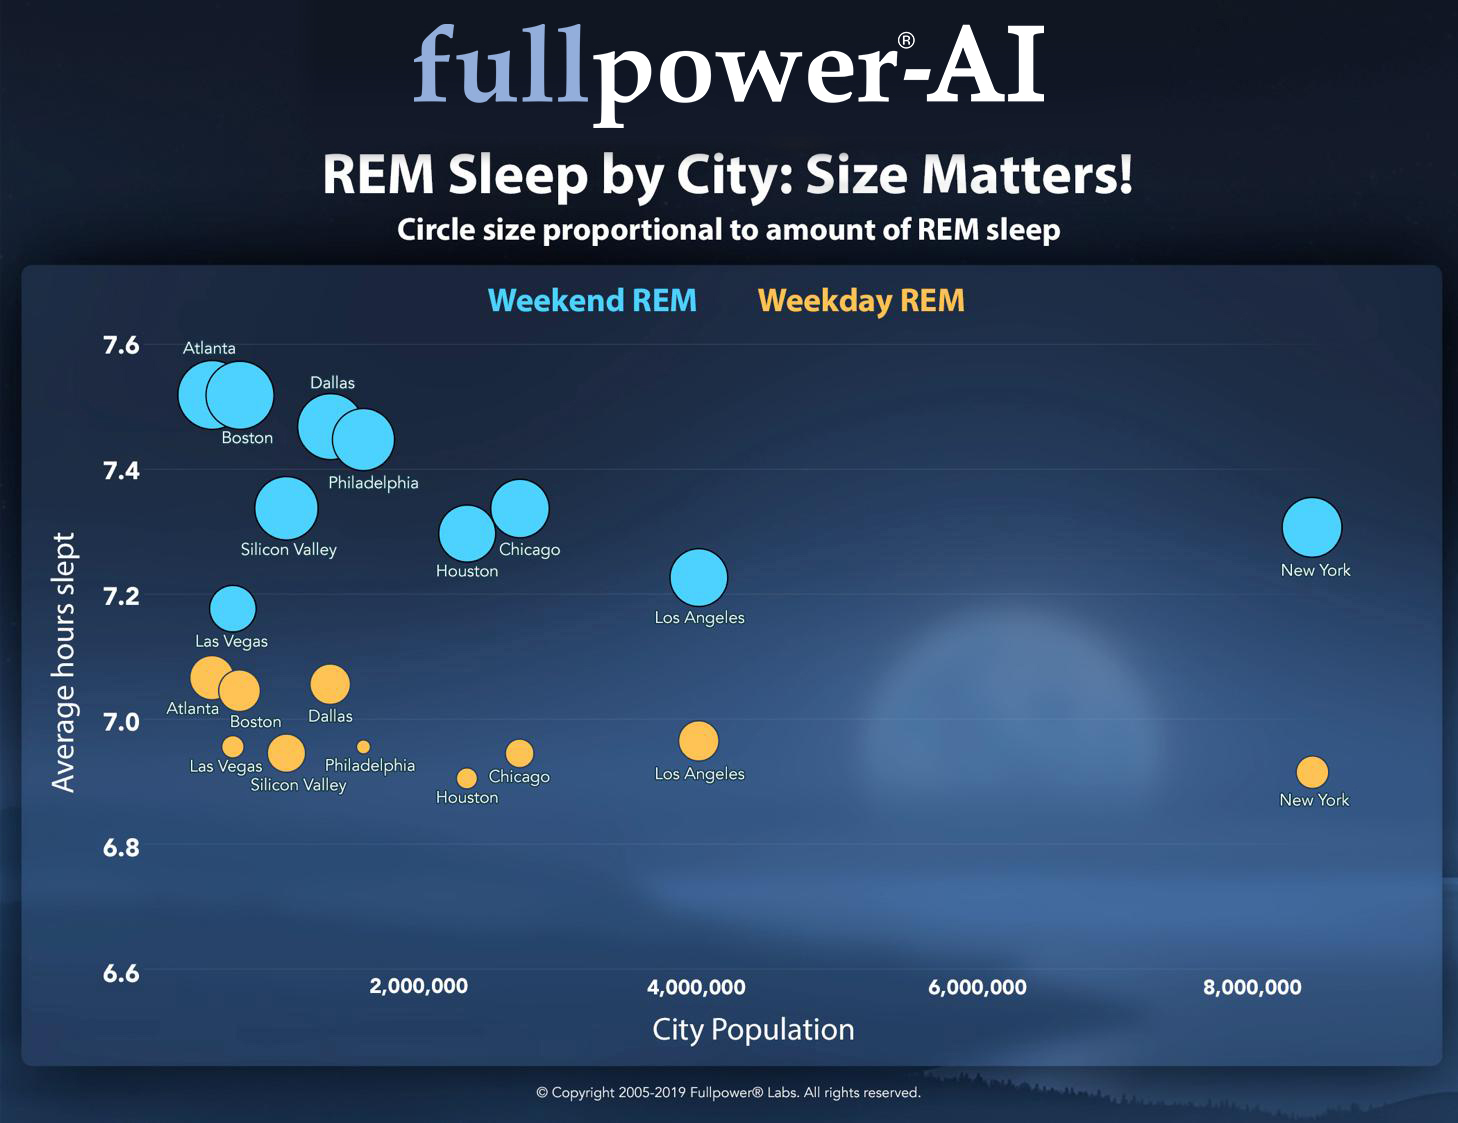 rem-sleep-by-city-size-matters